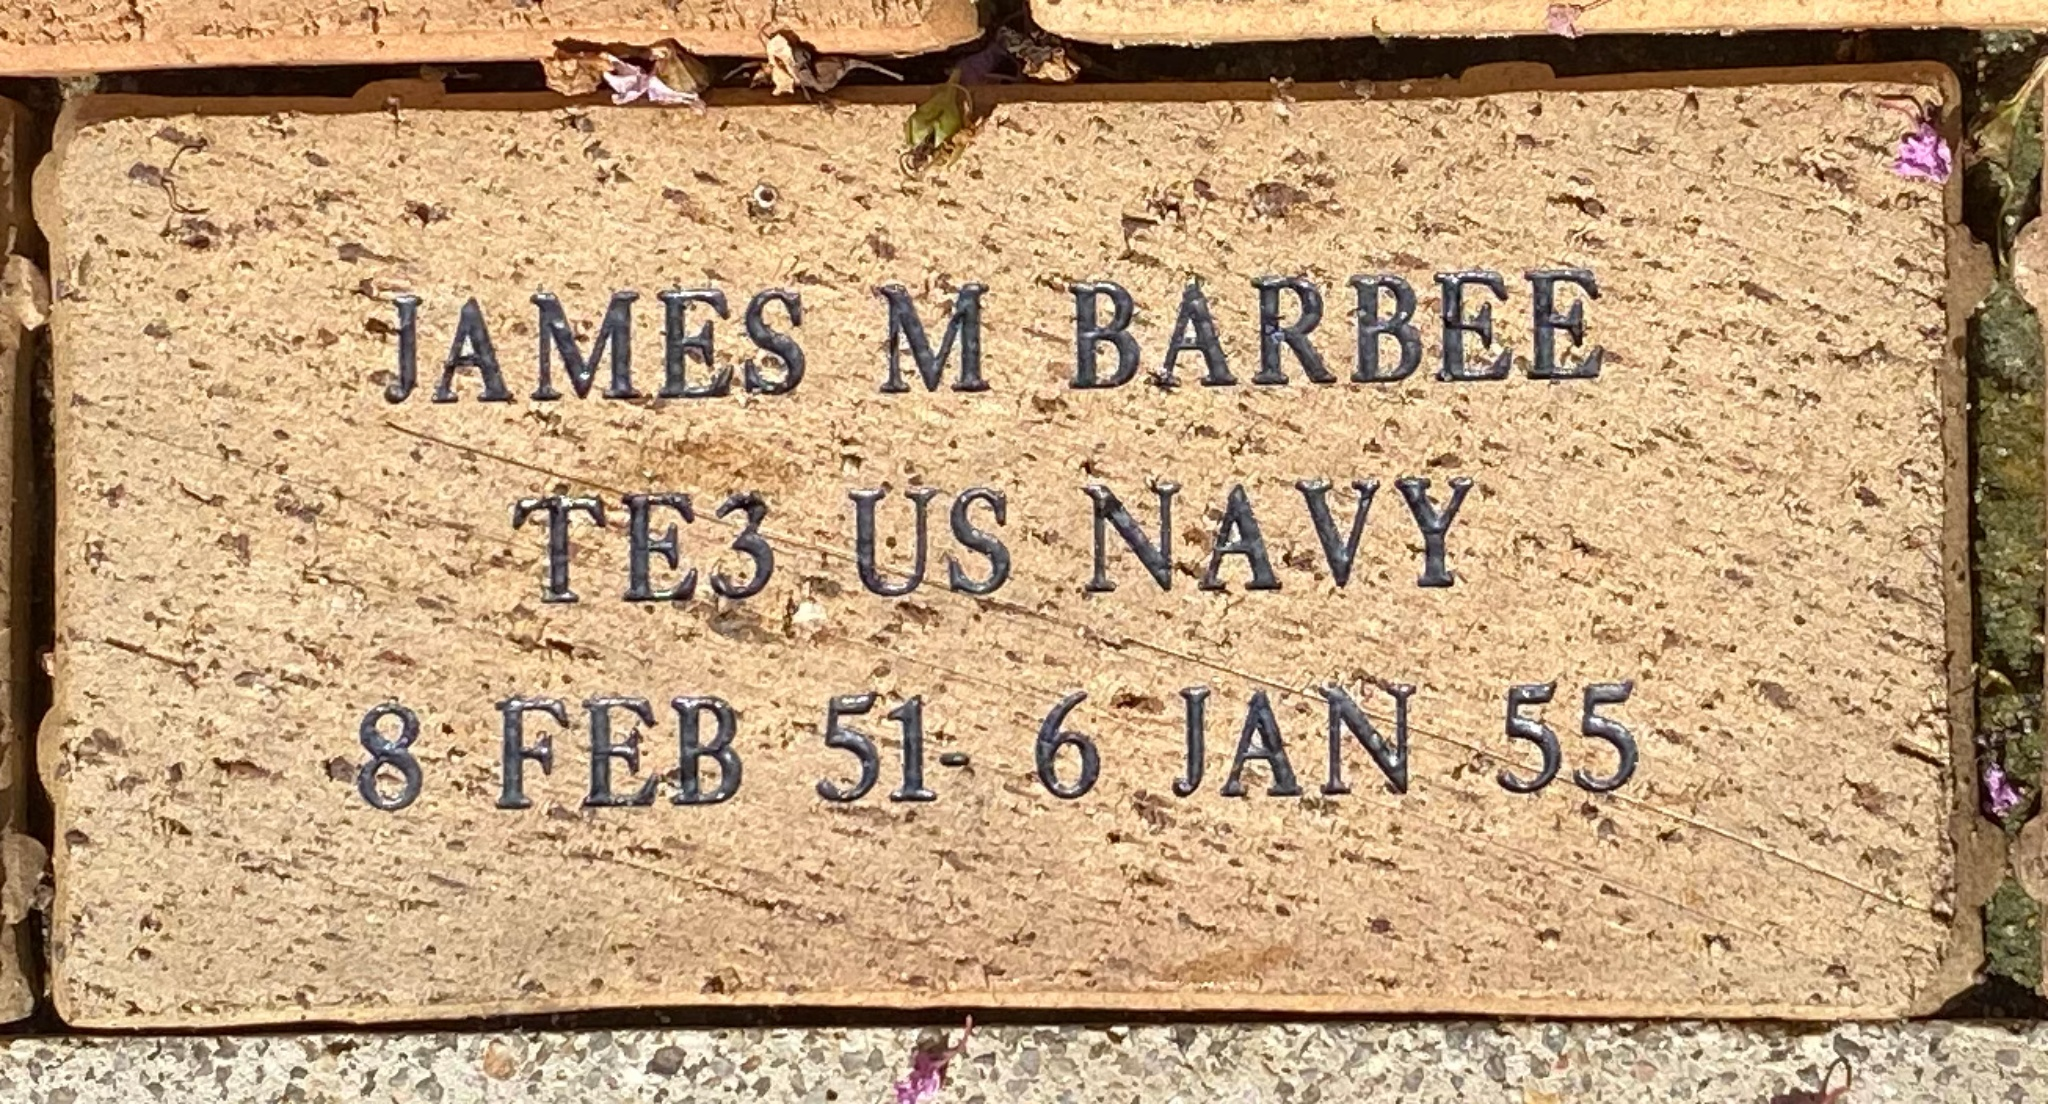 JAMES M BARBEE TE3 US NAVY 8 FEB 51 – JAN 55